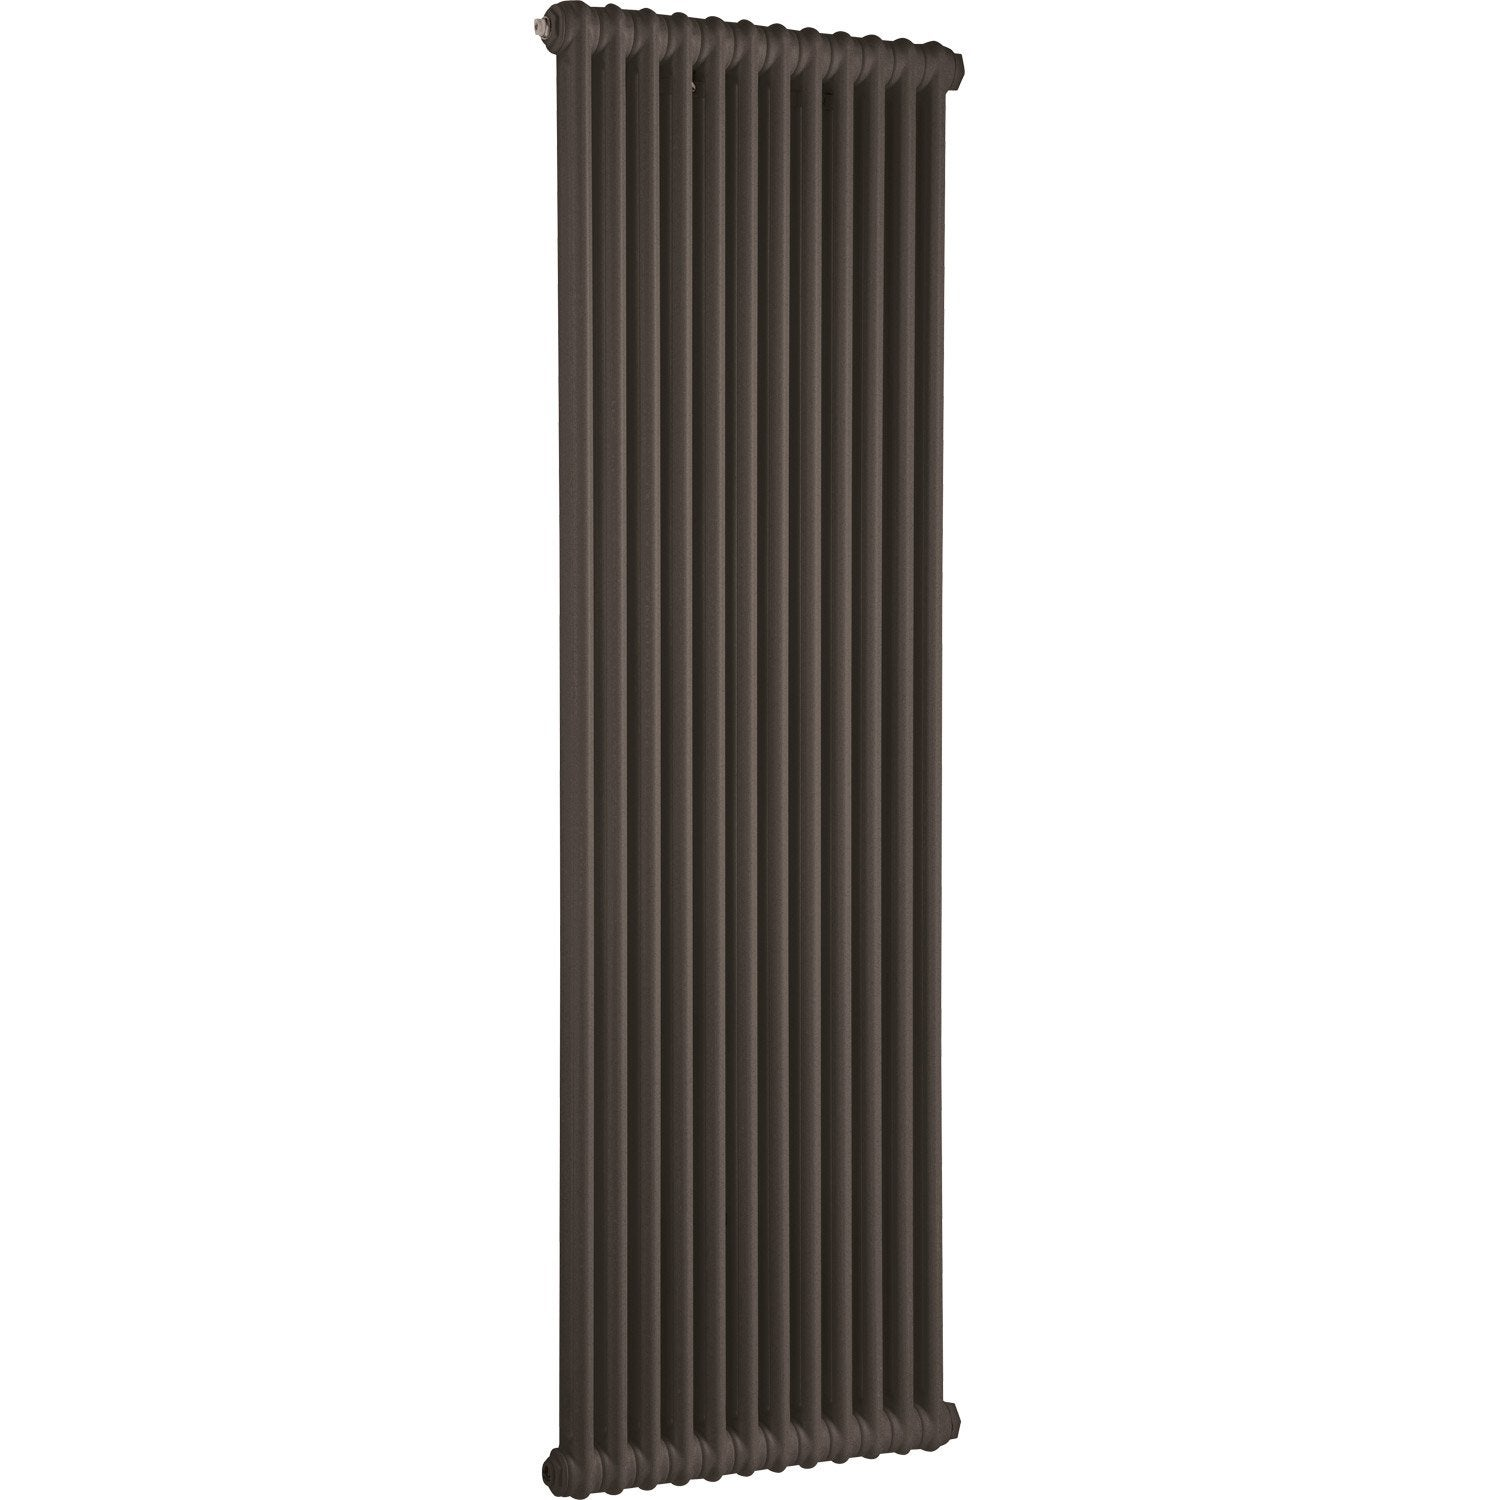 radiateur chauffage central acier tesi 2 tabac. Black Bedroom Furniture Sets. Home Design Ideas